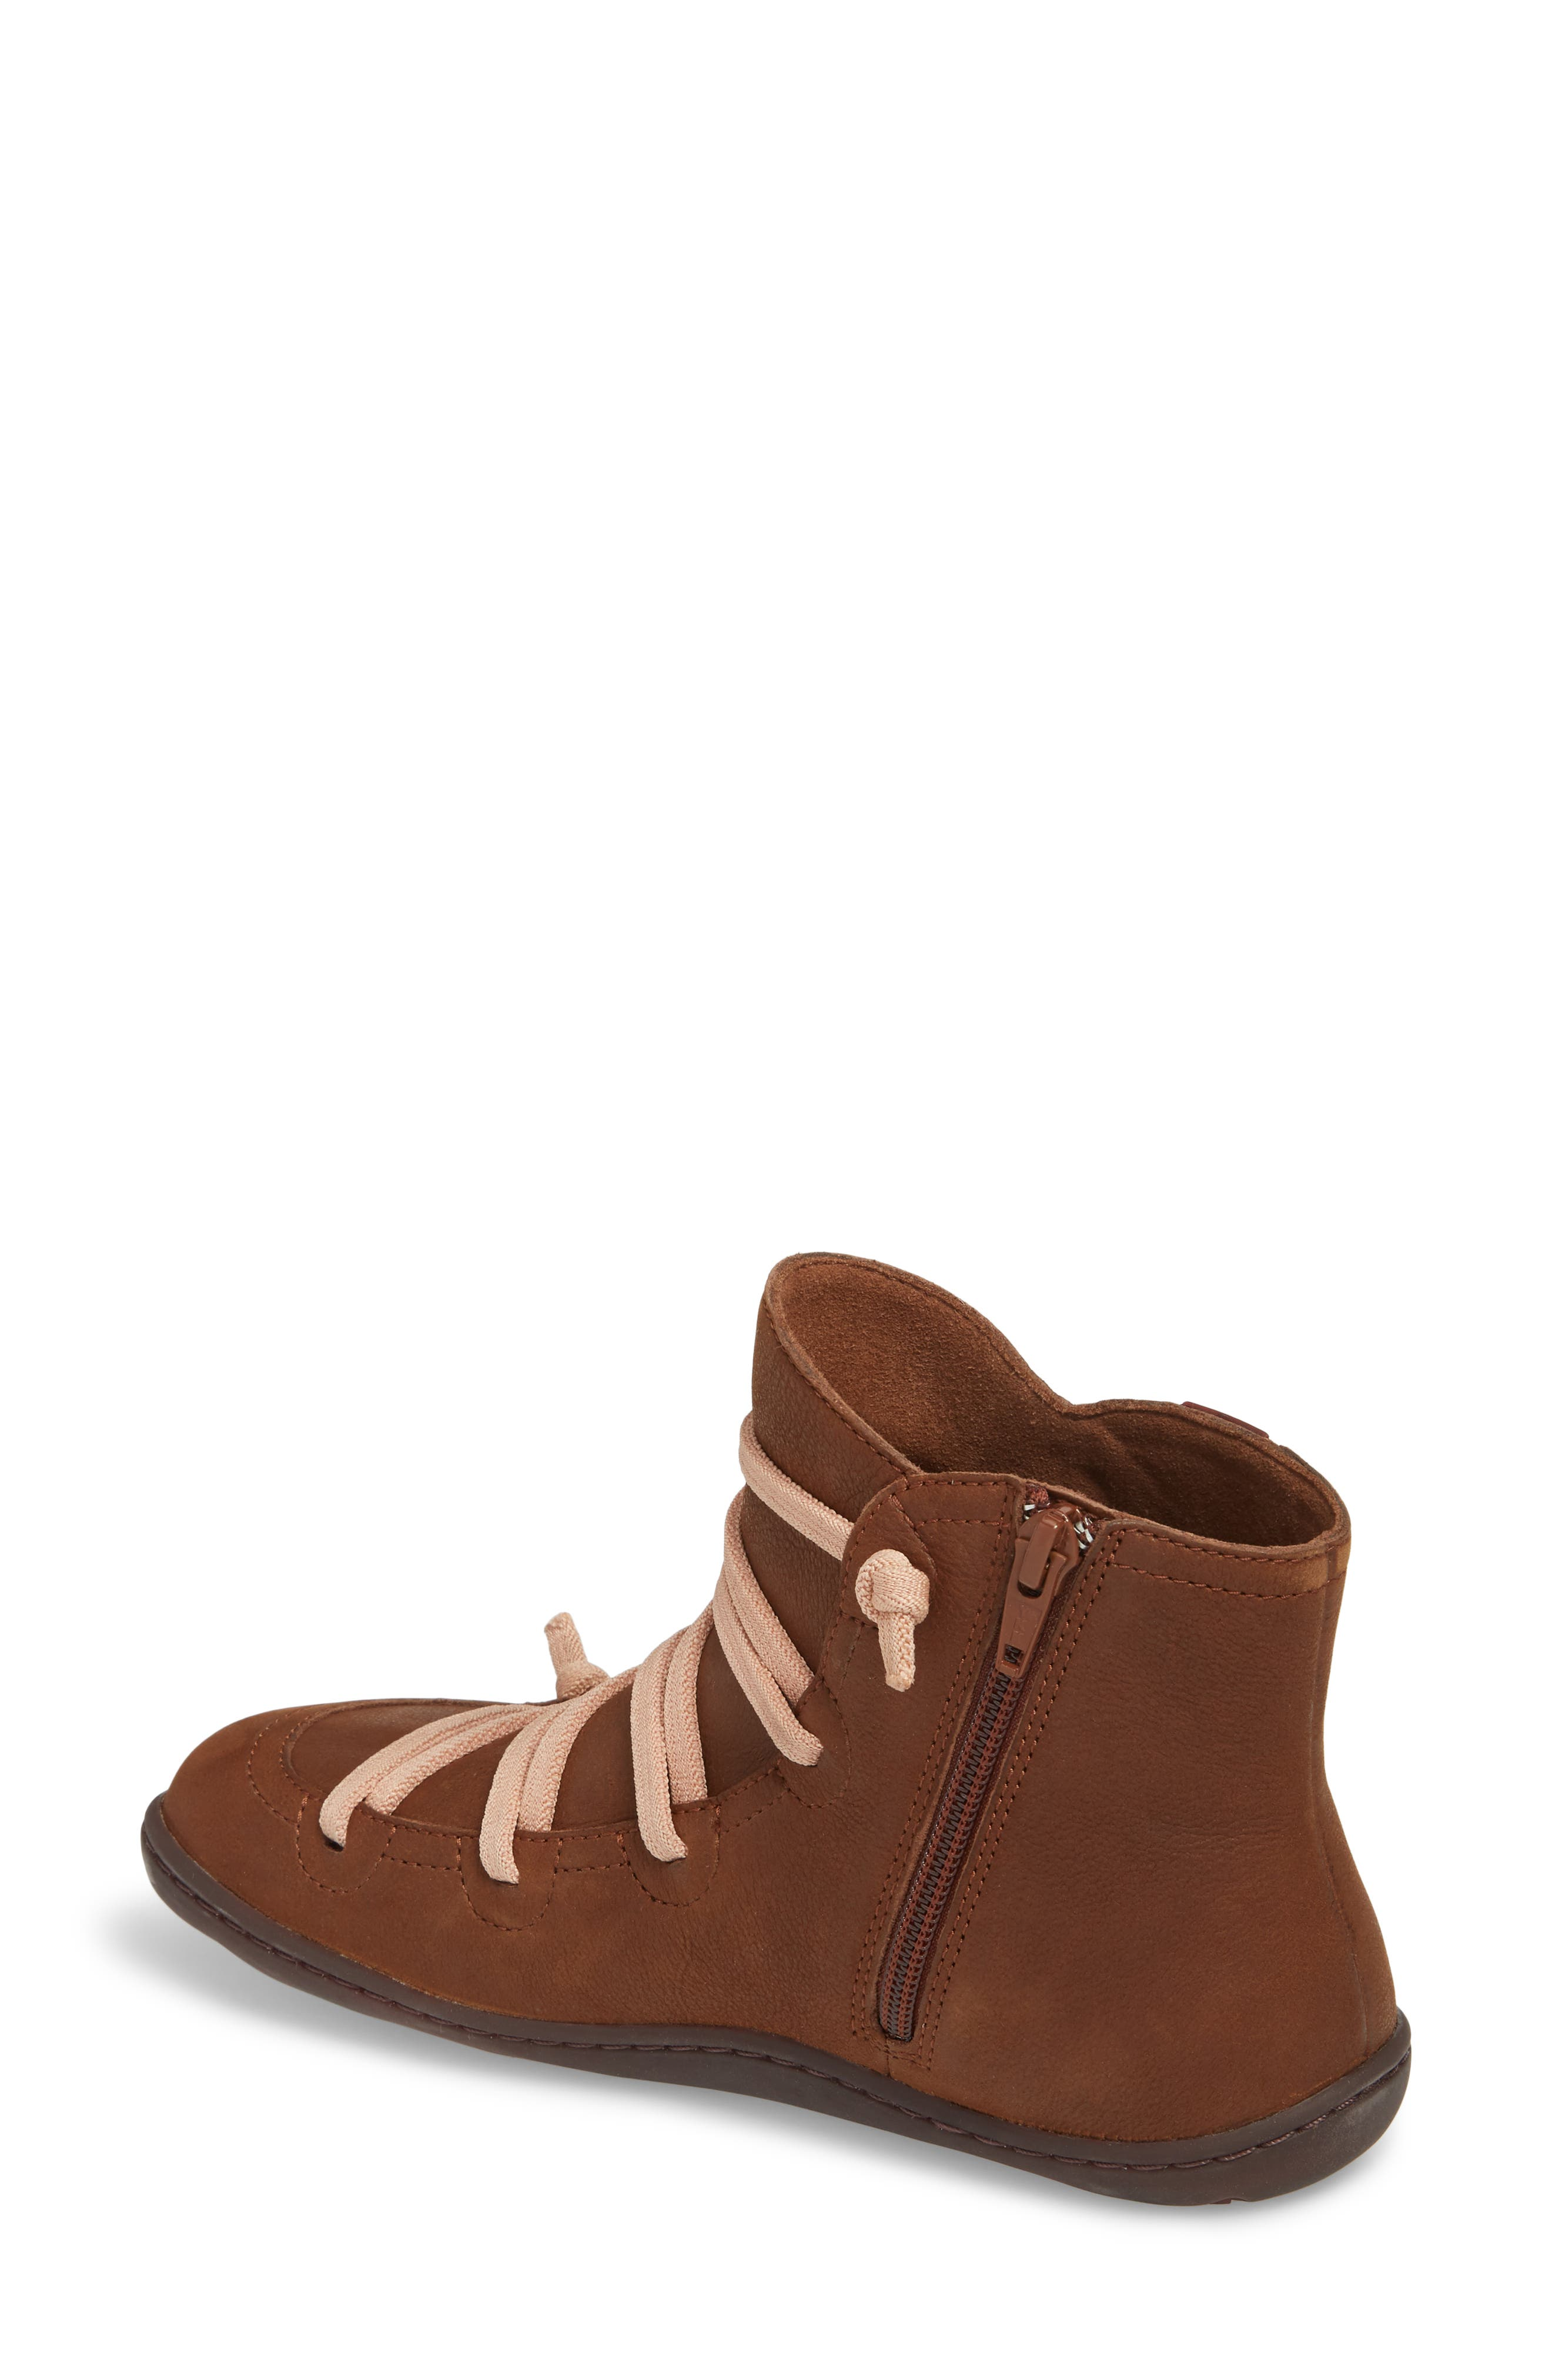 CAMPER,                             Peu Cami Bootie,                             Alternate thumbnail 2, color,                             MEDIUM BROWN LEATHER